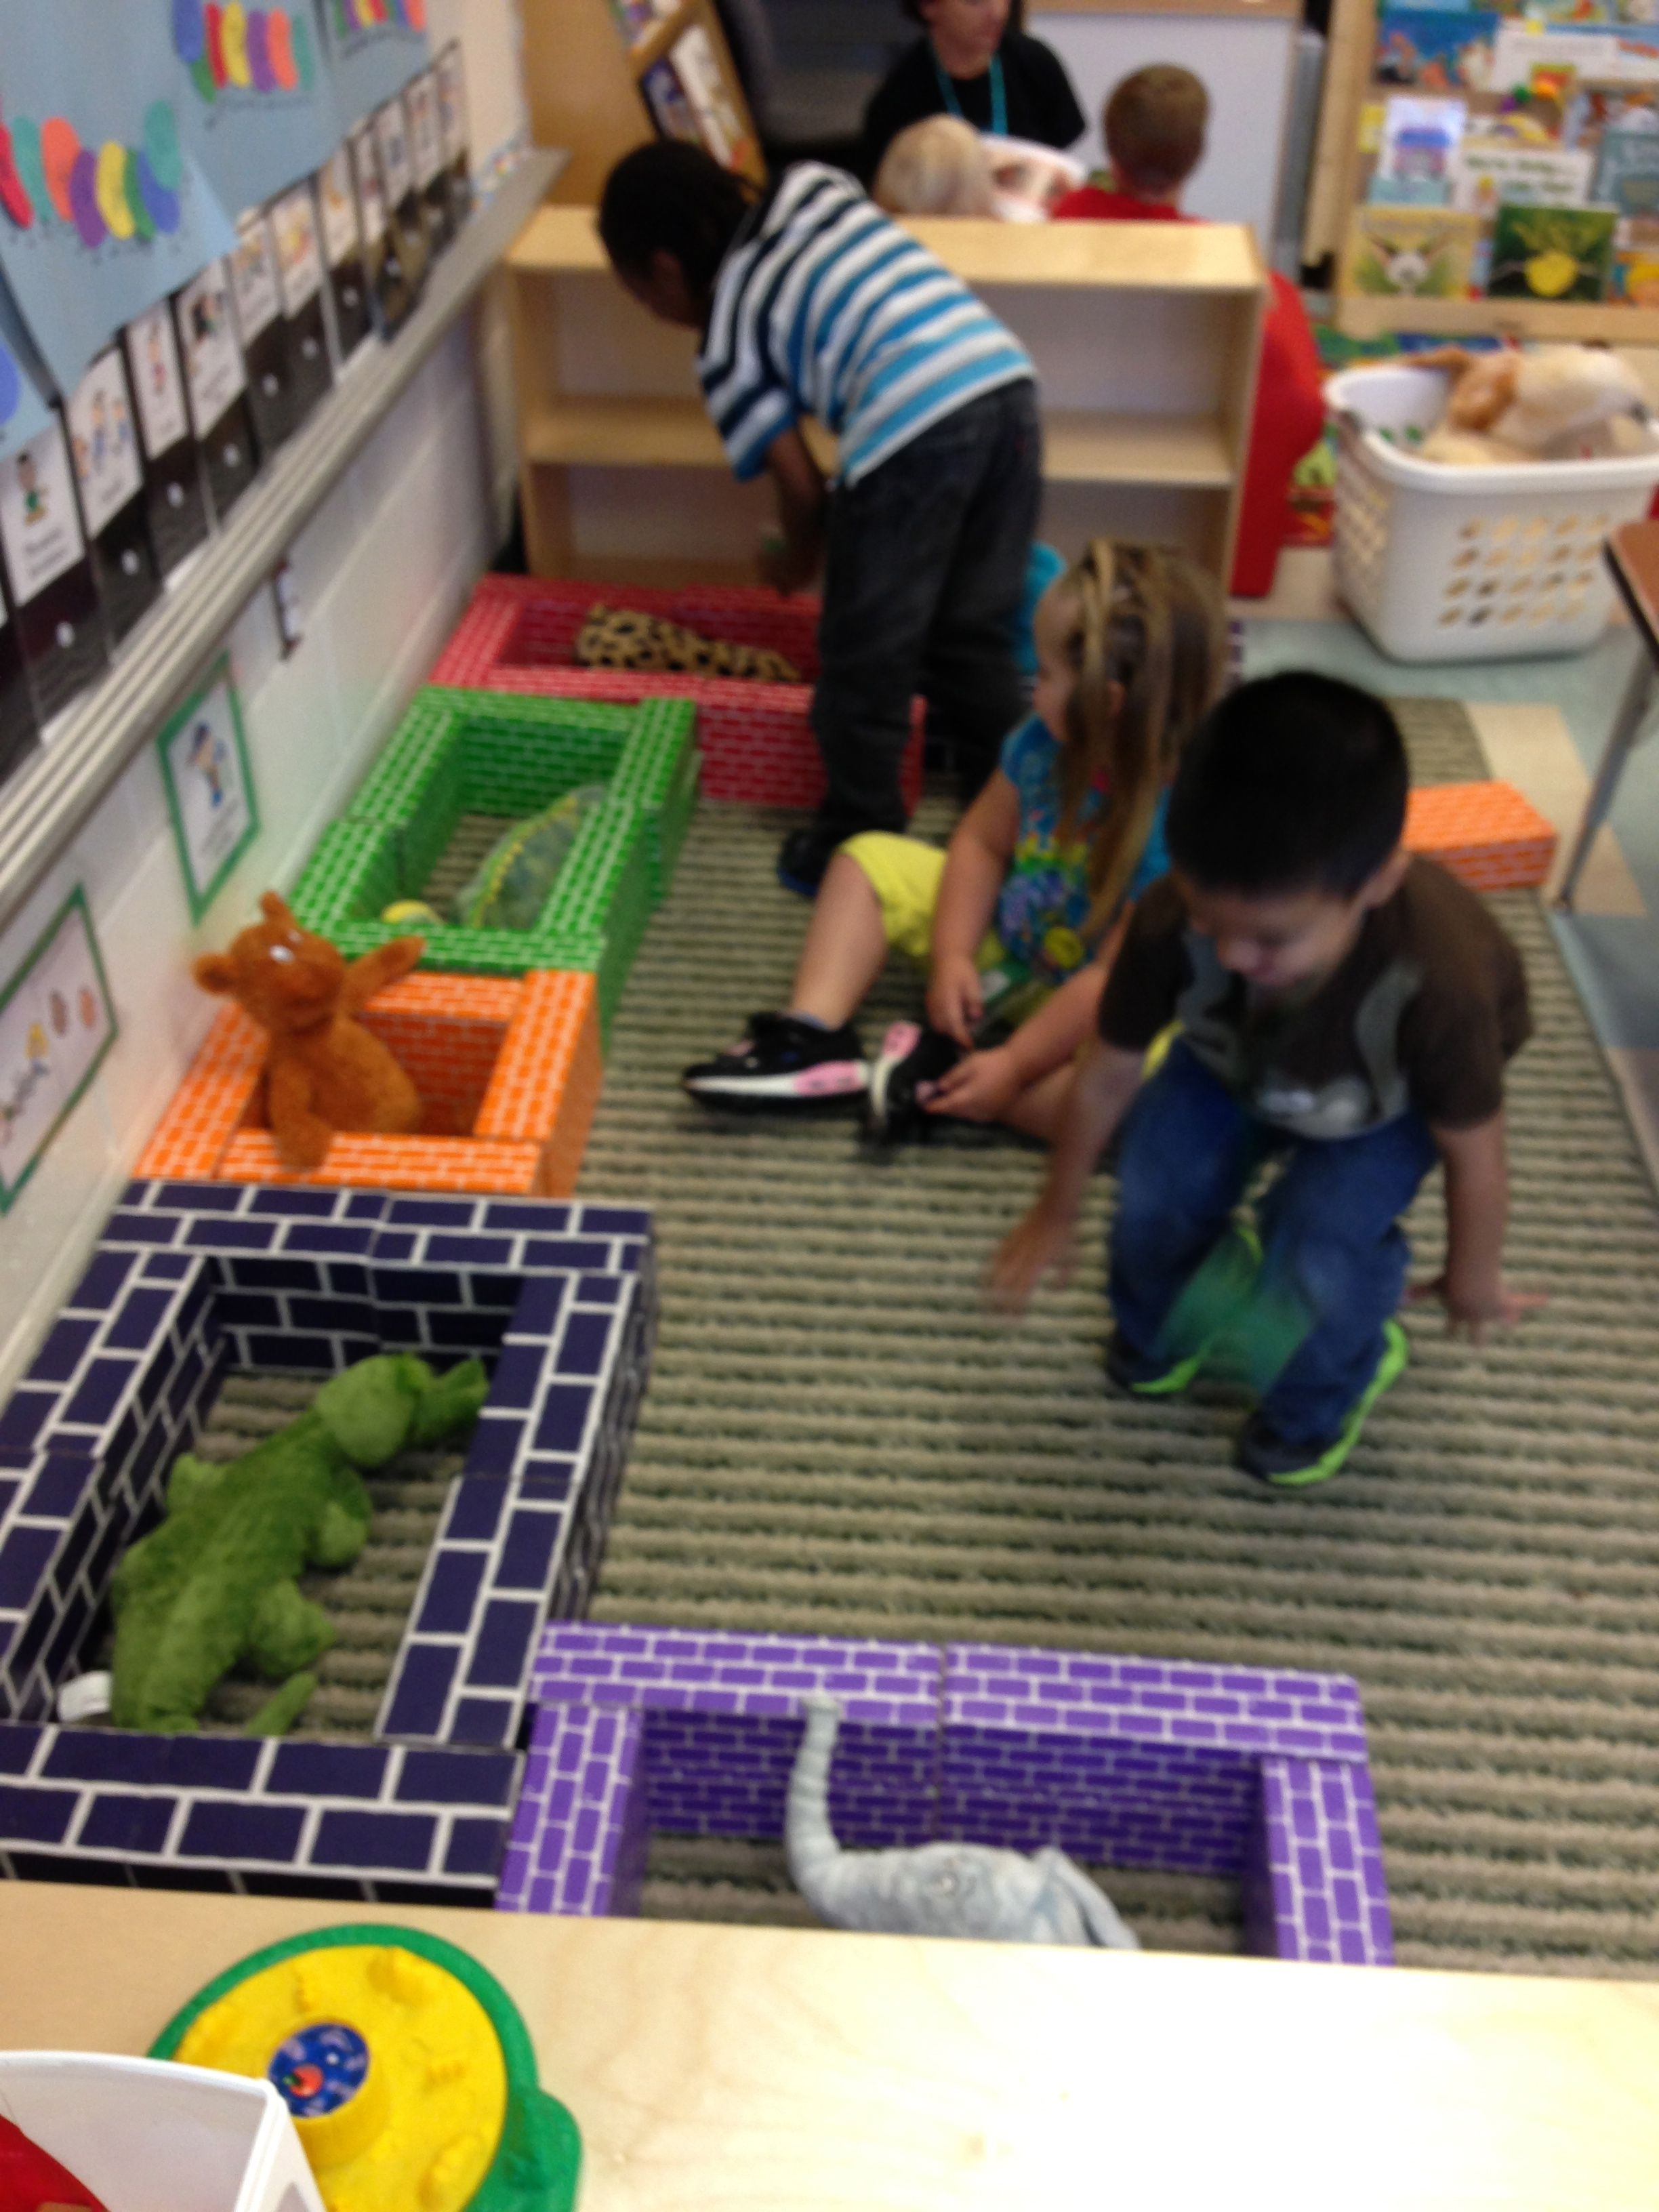 Creating Cages For Stuffed Zoo Animals In The Block Center